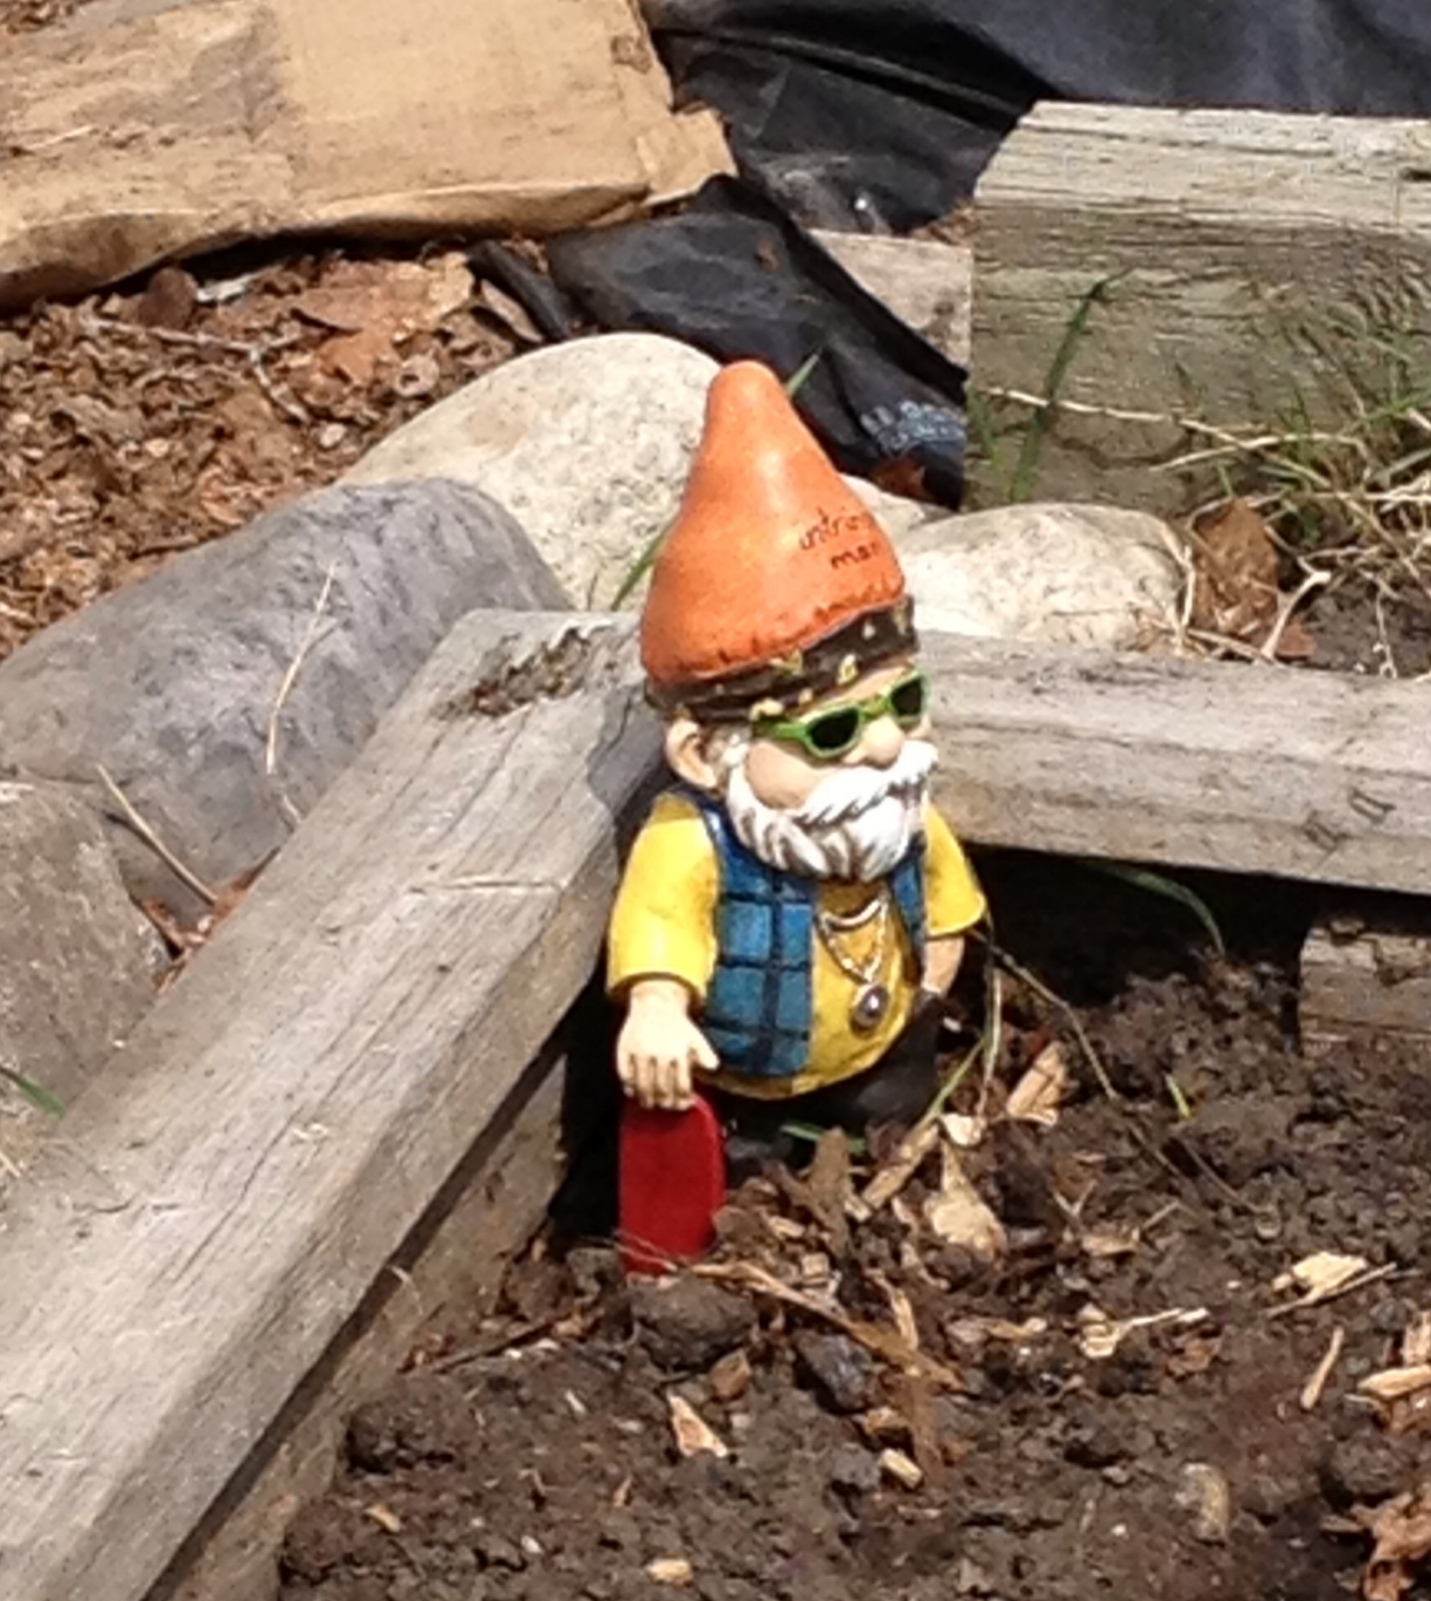 My garden gnome in the early season watching over the seeds